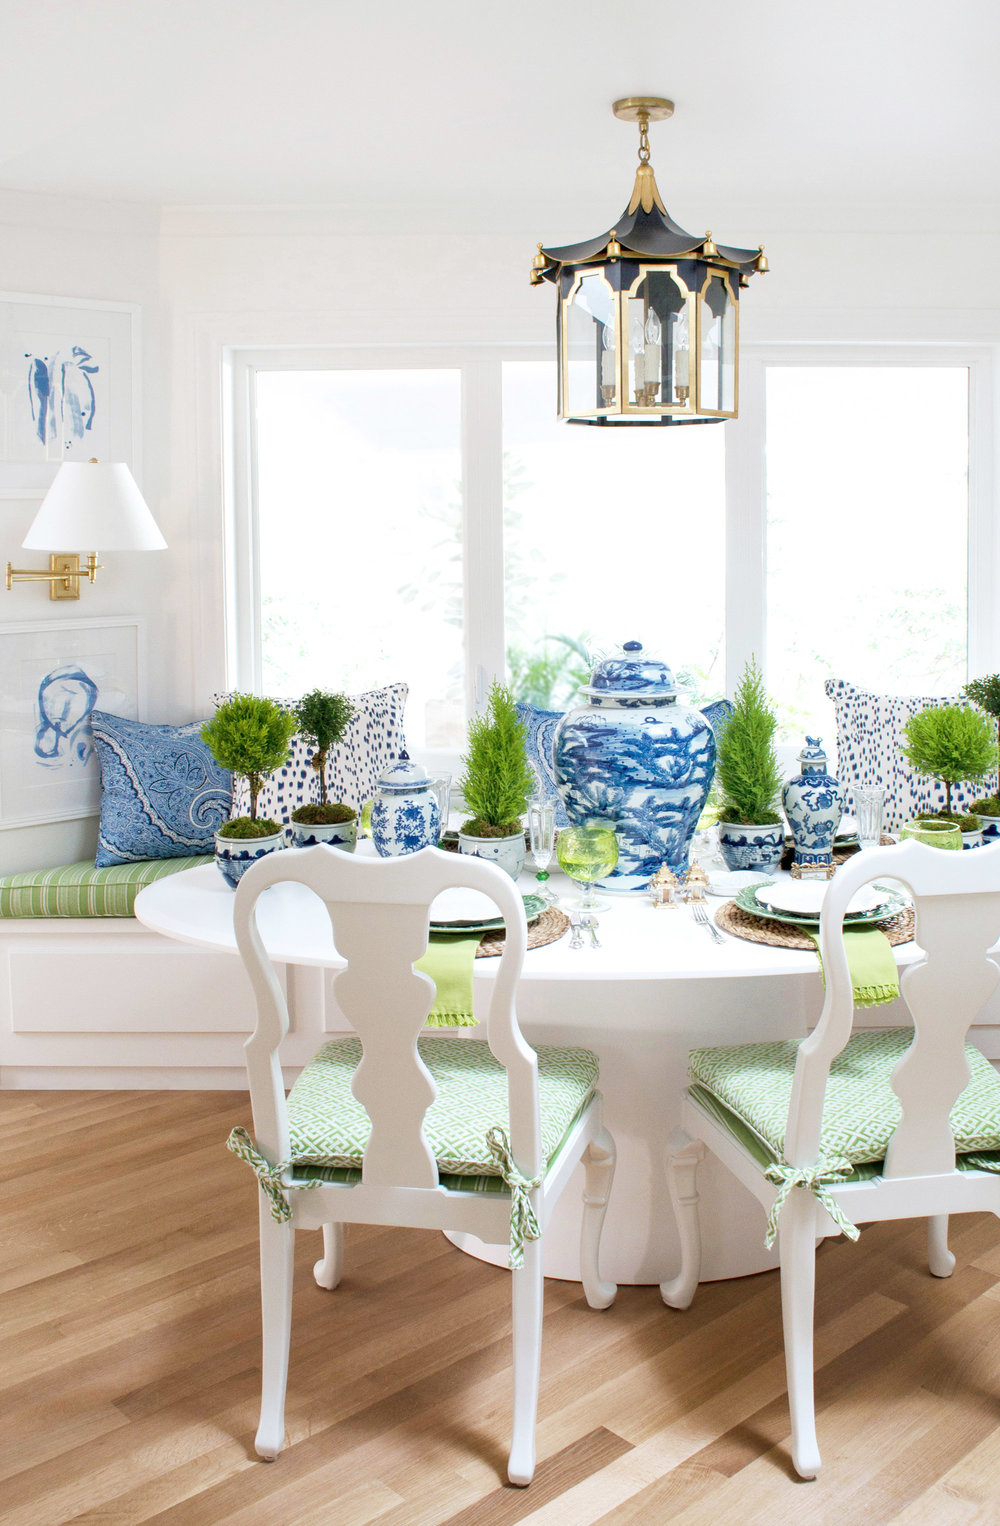 Blue abstract paper pieces by Christina Baker, pillows, and blue and white Chinese ceramics add the perfect amount of blue to this breakfast banquette.